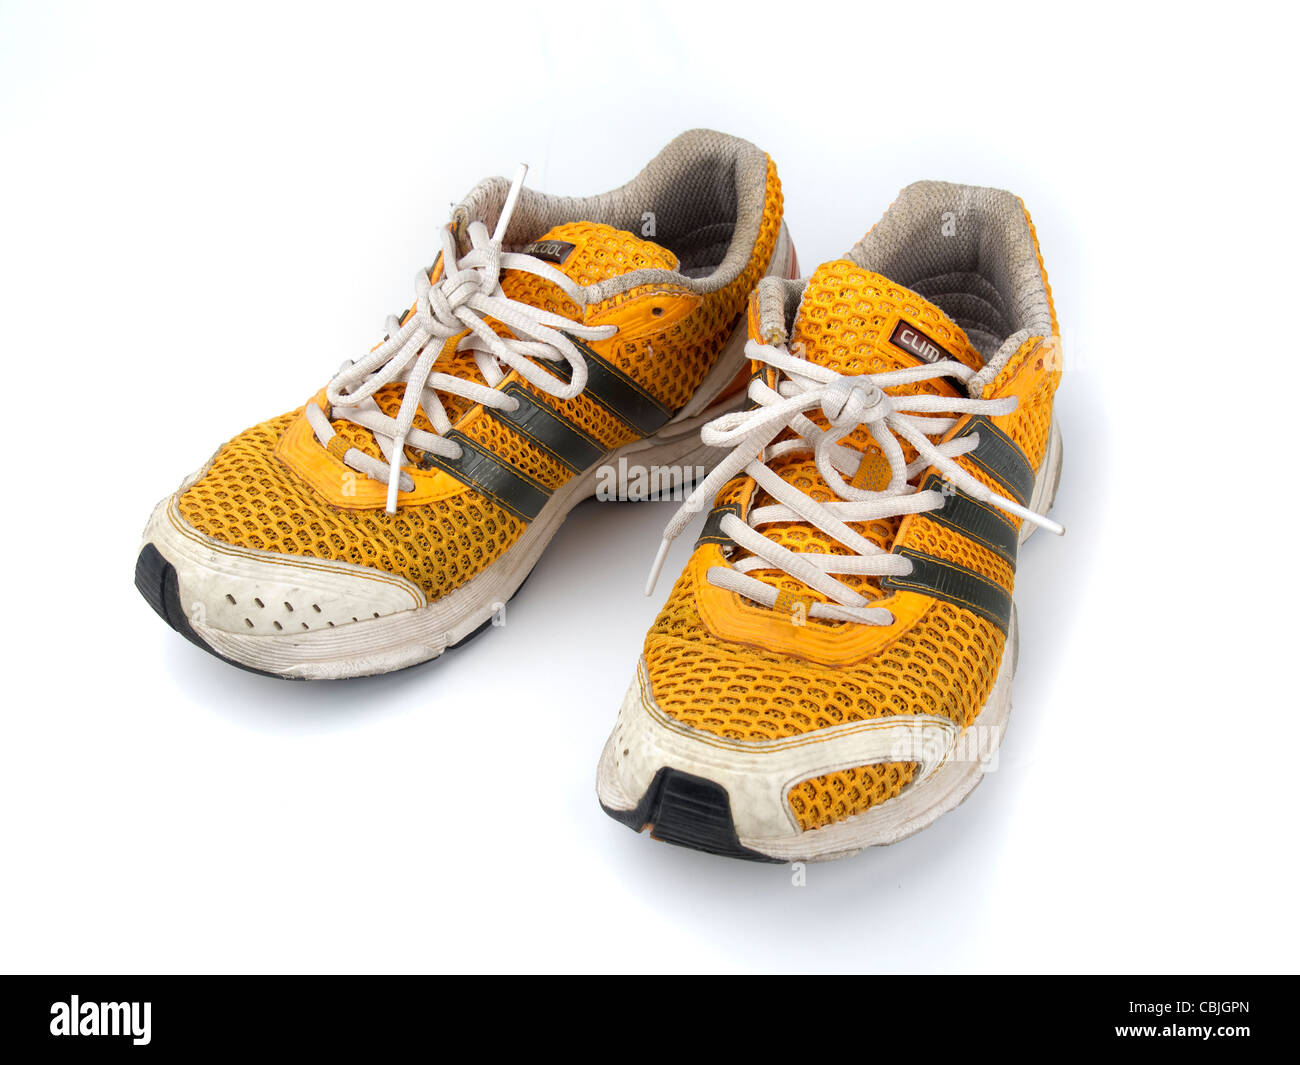 9e2d87af8afd Sneakers Adidas Trainers Stock Photos   Sneakers Adidas Trainers ...